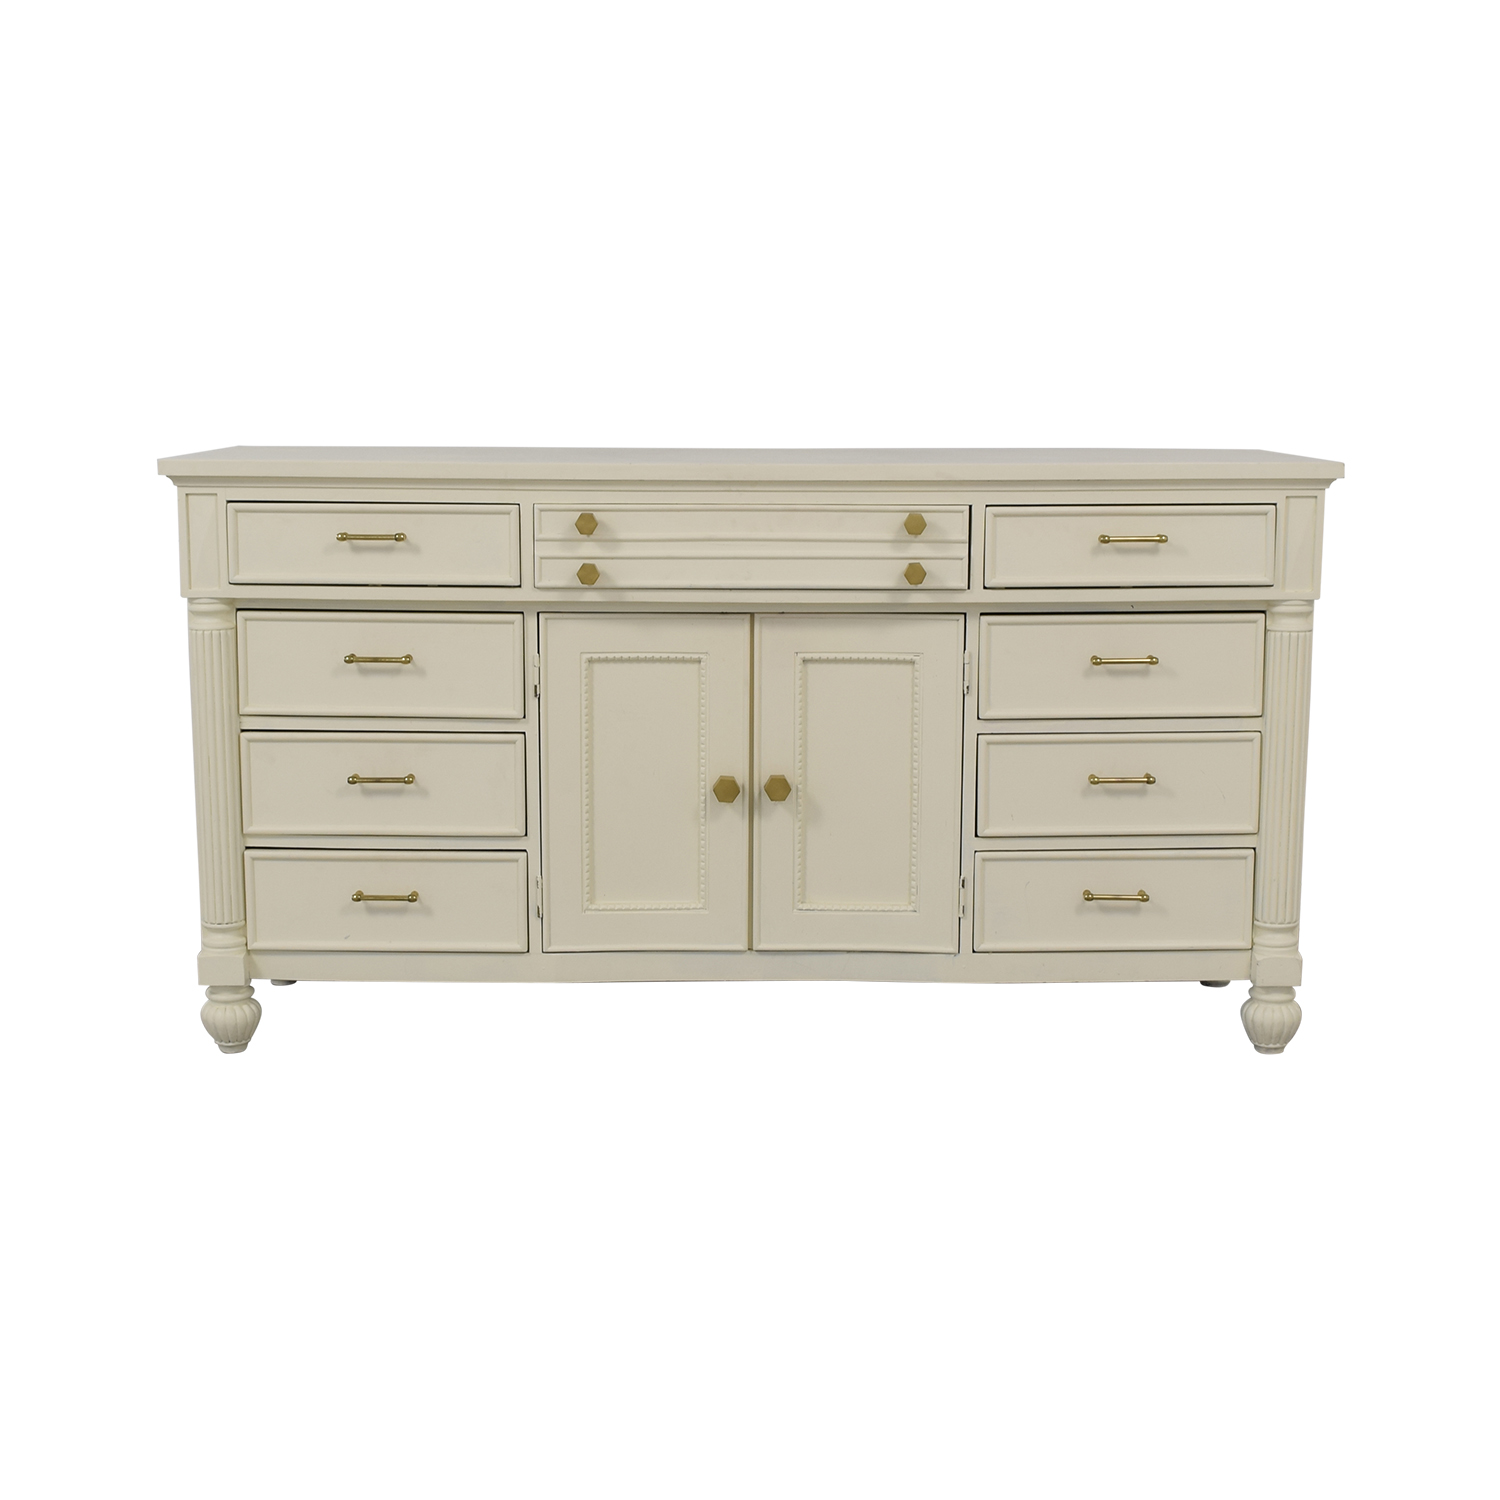 Domain Domain Furniture Chest of Nine Drawers dimensions